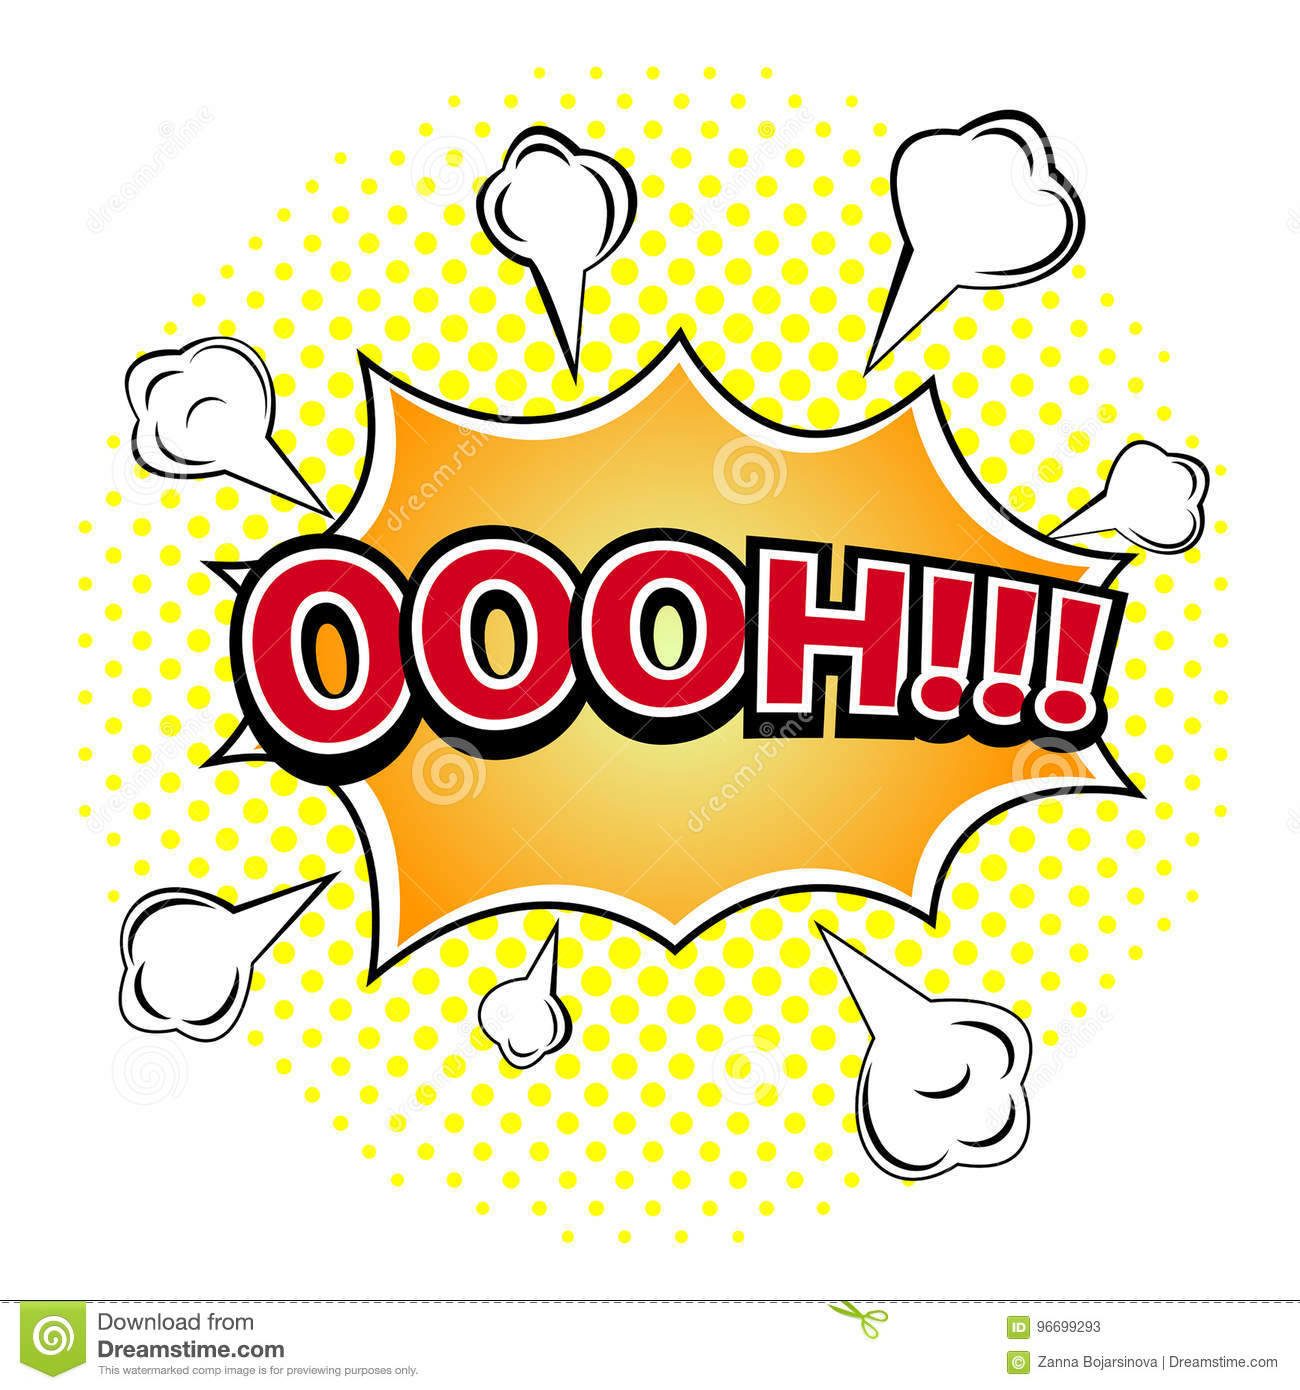 Oooh oooh! comic book explosion. stock vector - illustration of word